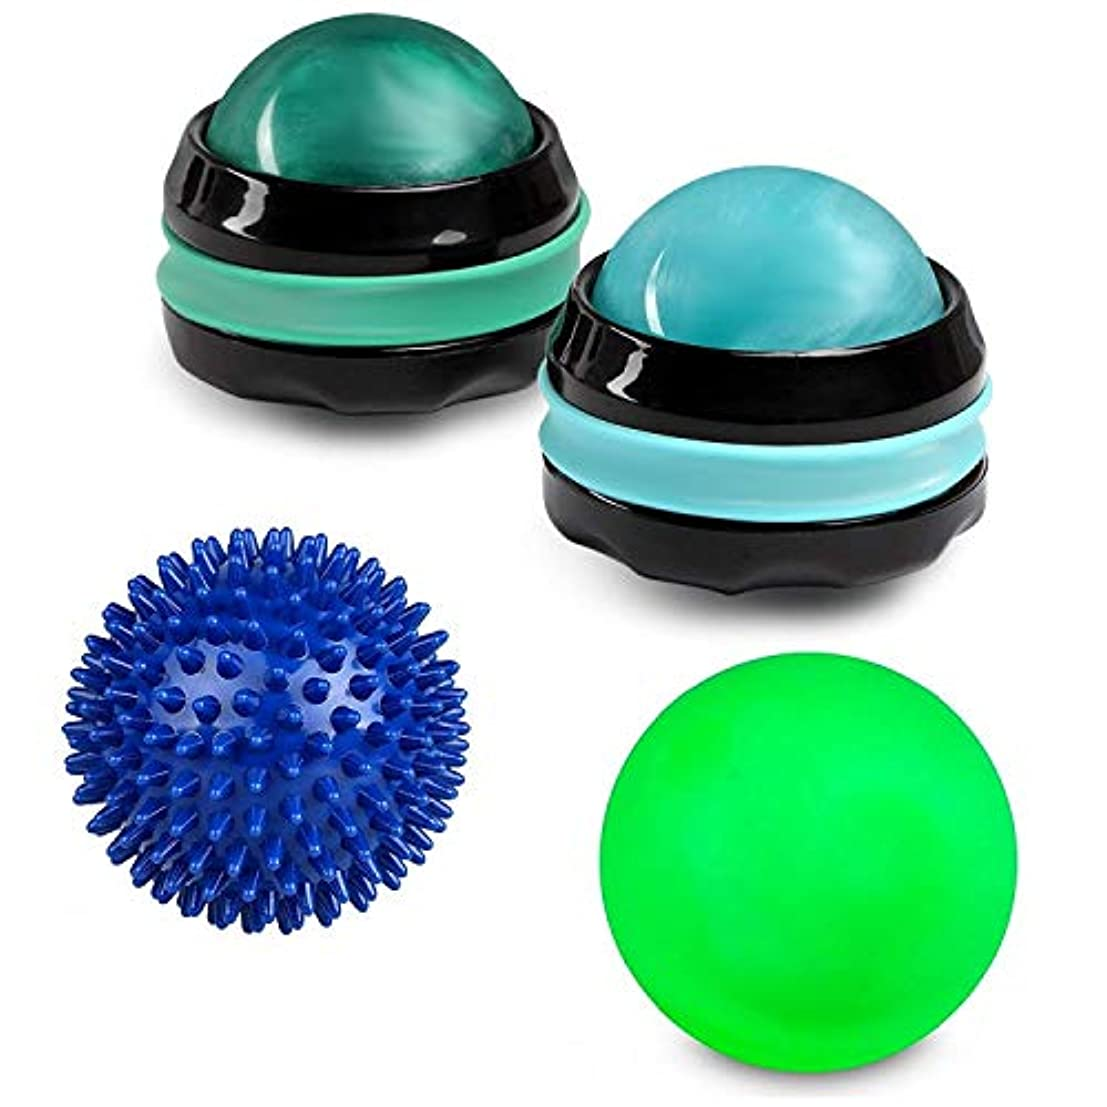 Massage Ball Set - Foot Body Back Leg Neck Hand Rejuvenation Therapy Roller Massager Therapy (Bundle: 1 Lacrosse...